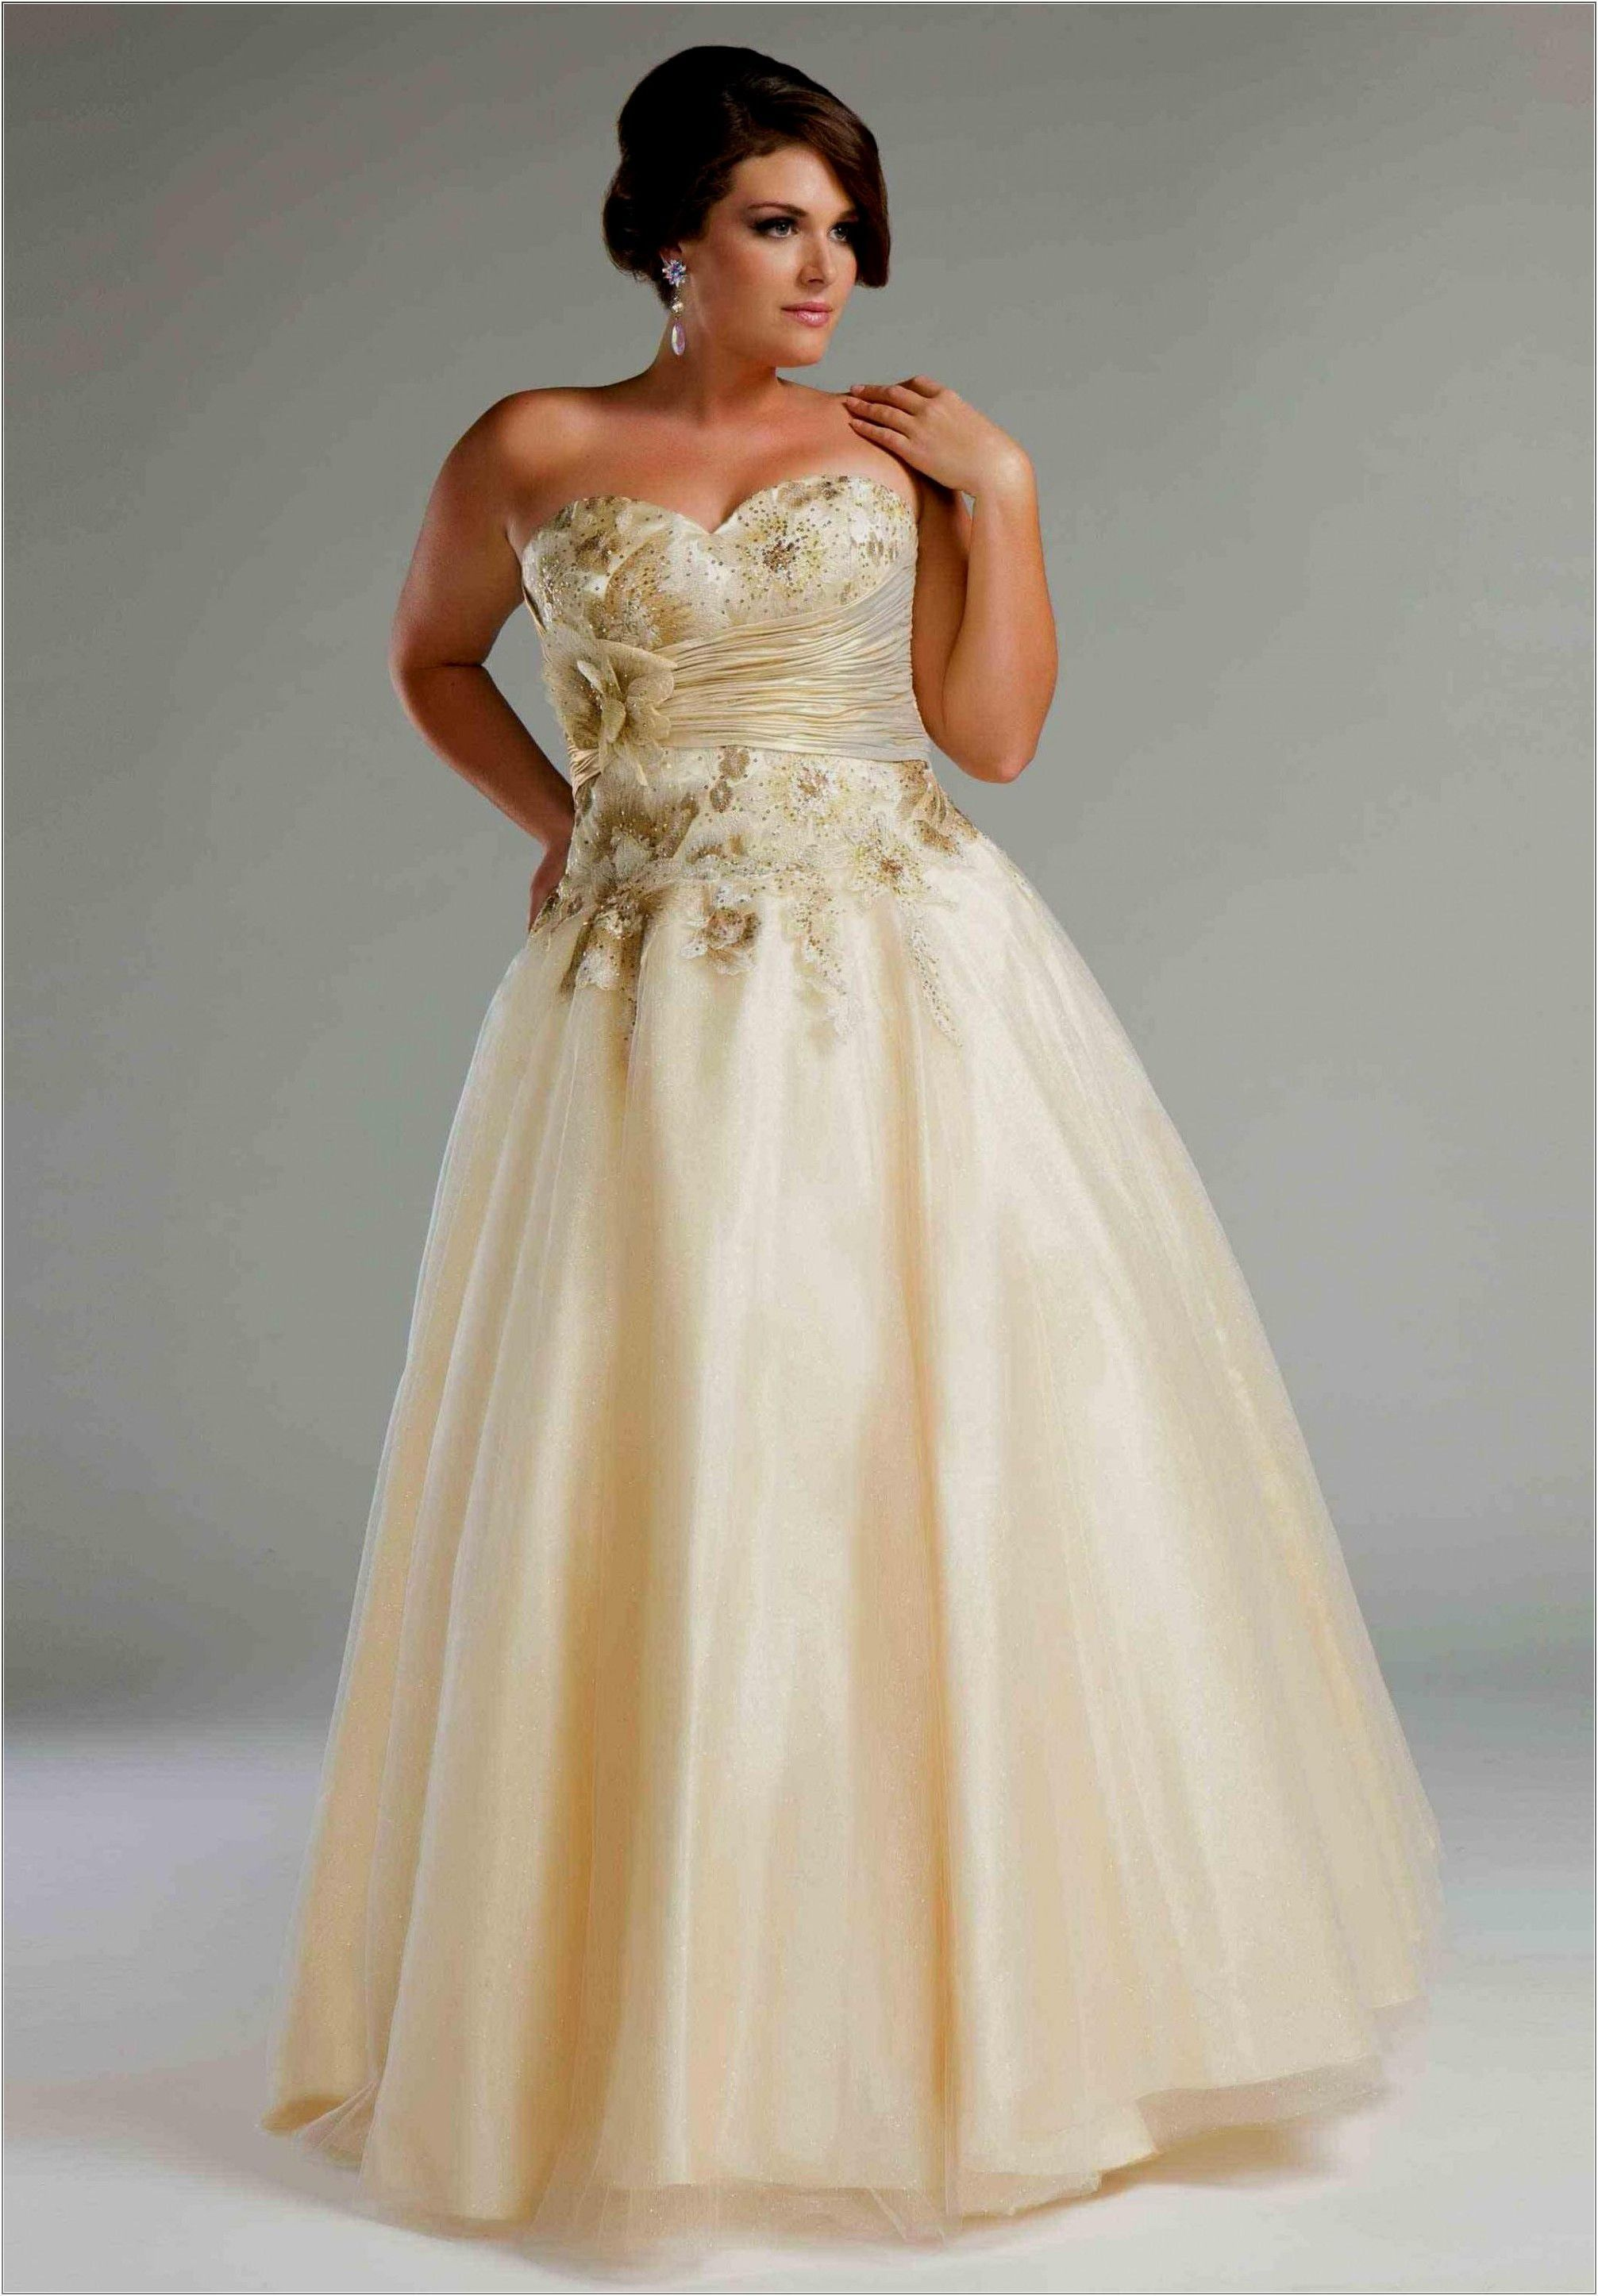 Plus Size Wedding Dresses Pix For Plus Size Gold Wedding Dresses